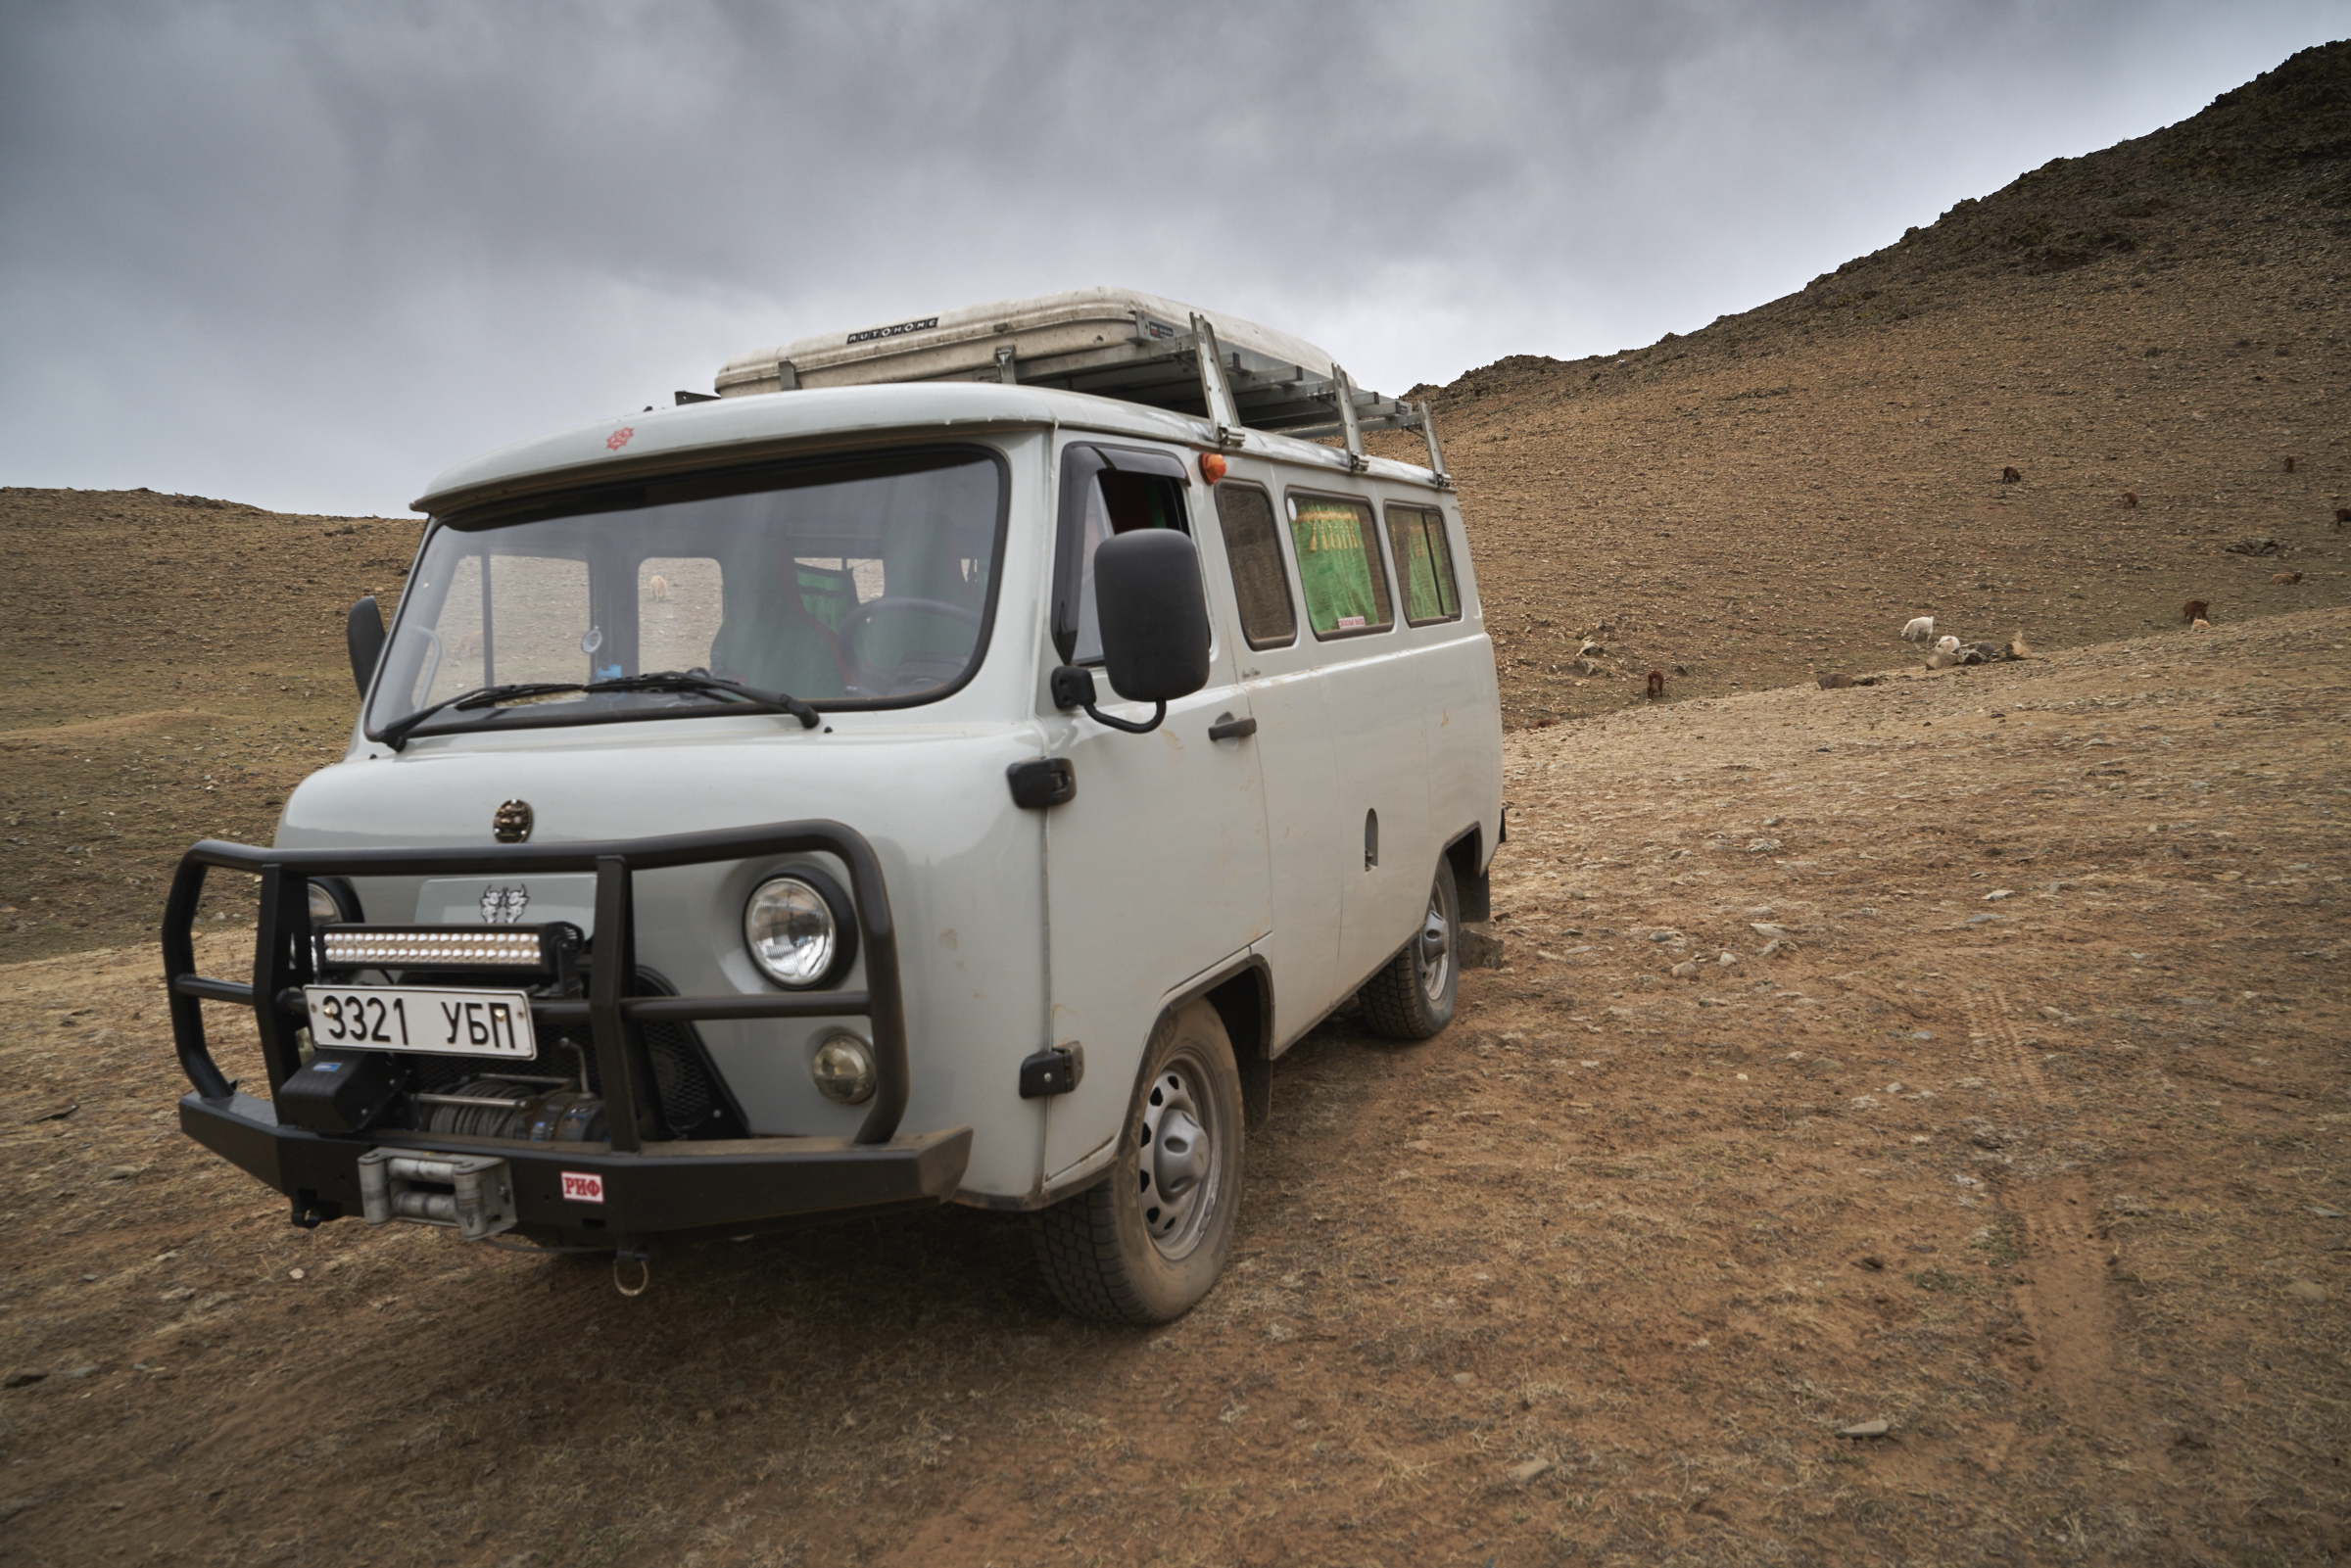 """UAZ, RUSSIAN VAN, 2014, PETROL, MECHANIC, 6-8 WILL FIT IN, GREAT OFF ROAD VEHICLE FOR A GROUP.ALL OUR CARS ARE EQUIPPED WITH """"ARB"""" BUMPER AND WINCHES. WE'LL PROVIDE TWO EXTRA TIRES. ROOF TENTS ARE OPTIONAL AND IT CAN BE INSTALLED IN EVERY VEHICLE.AND WE HAVE """"LUGGAGE STORAGE SERVICE"""" WITH FREE OF CHARGE."""